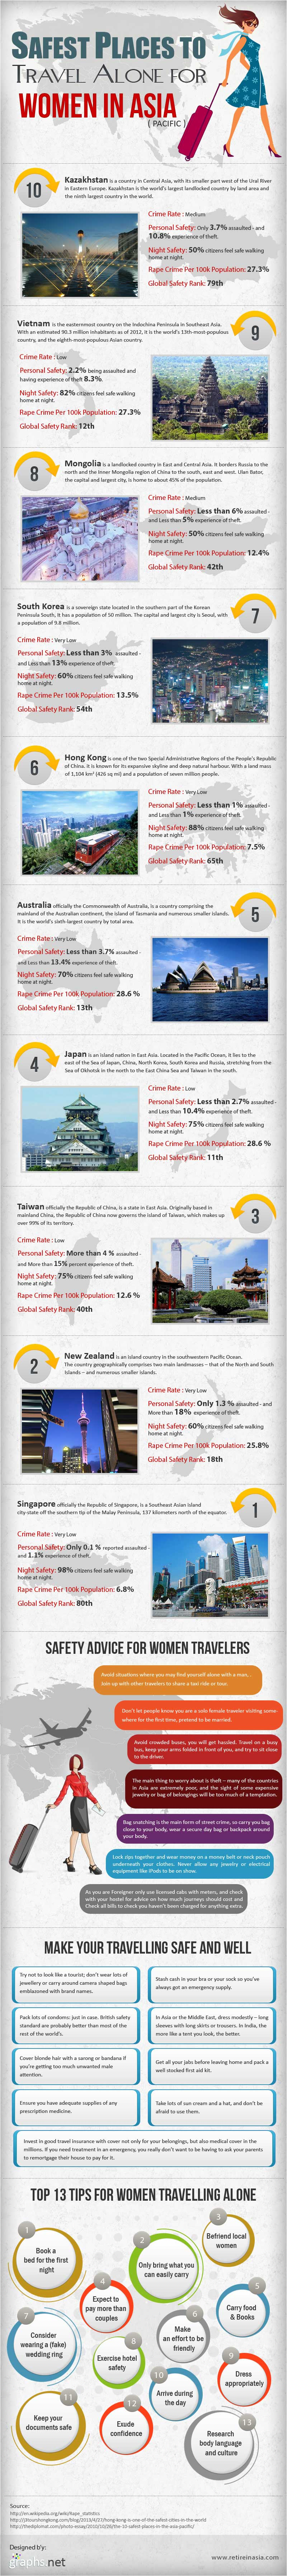 Safest Places To Travel Alone For Women In Asia Infographic